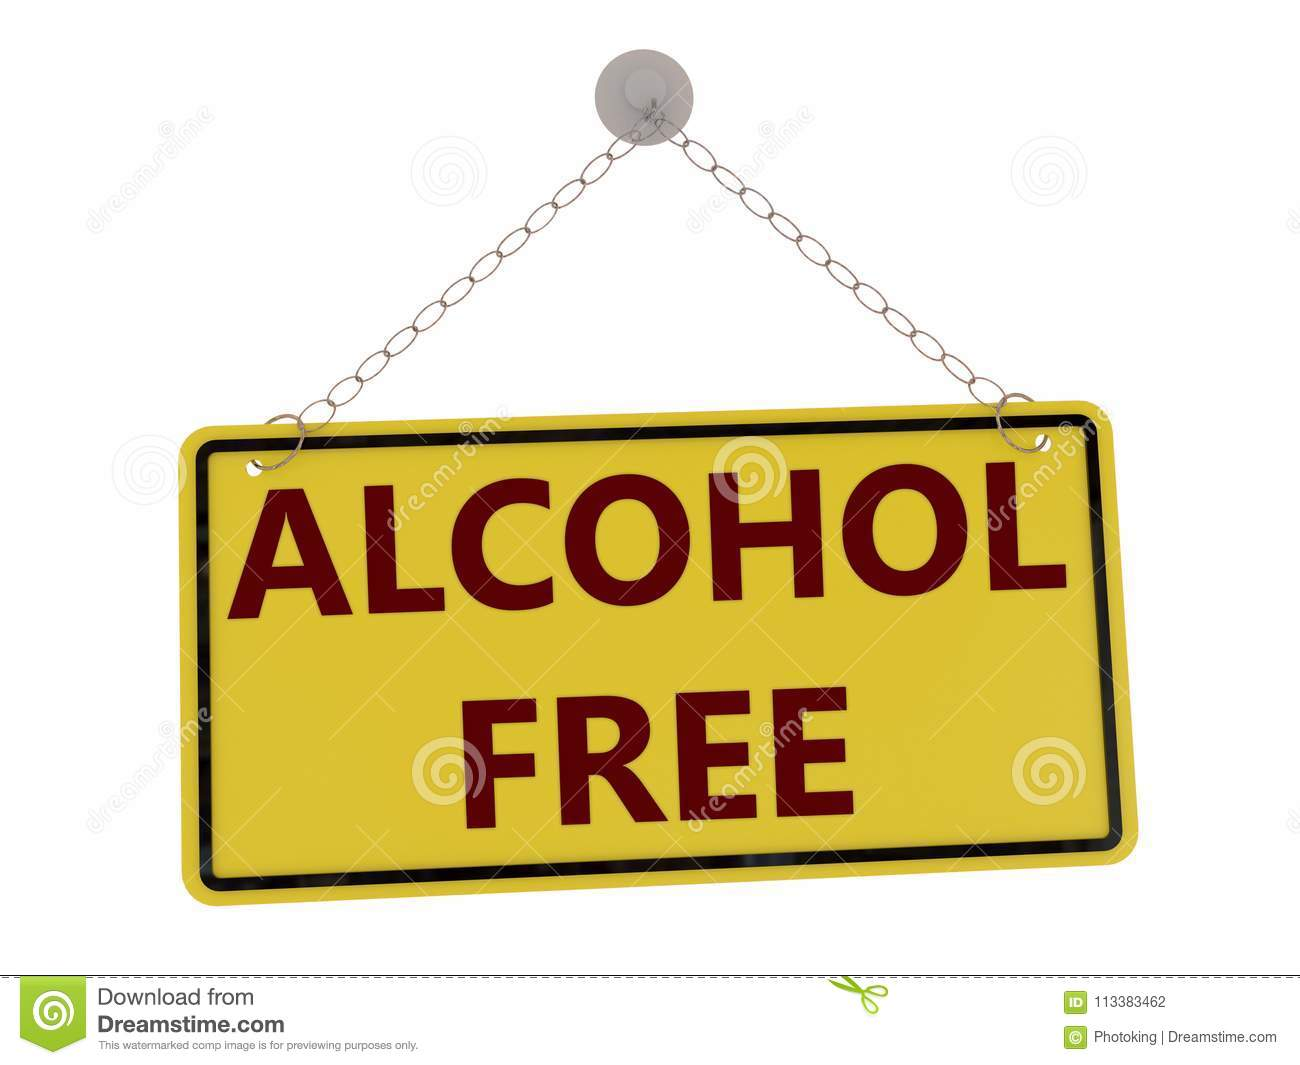 Alcohol free sign